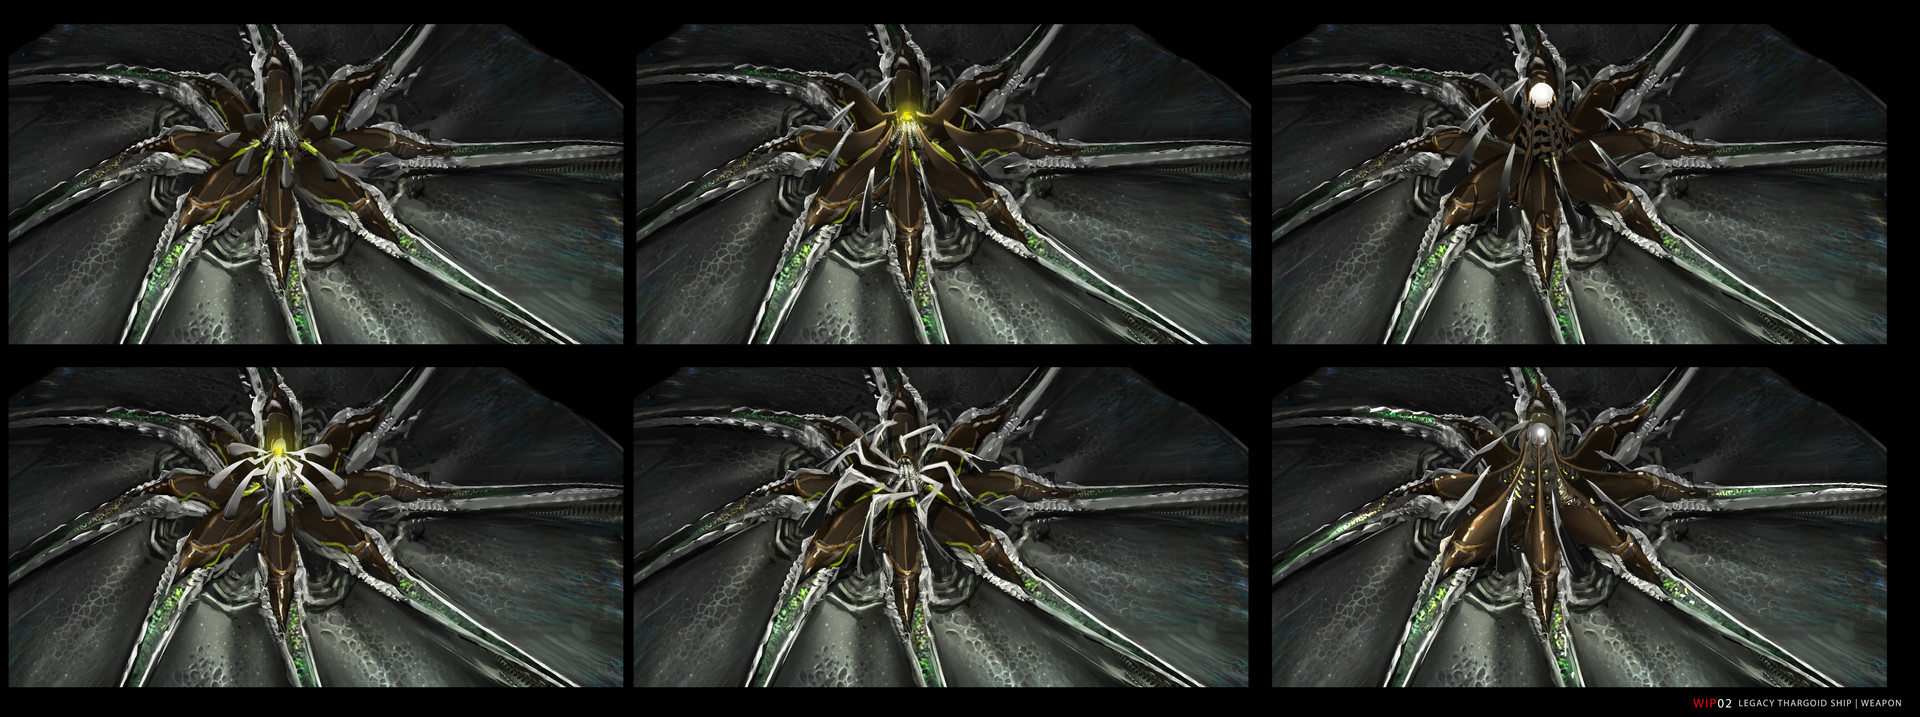 Emilie rinna legacy thargoid weapons 03